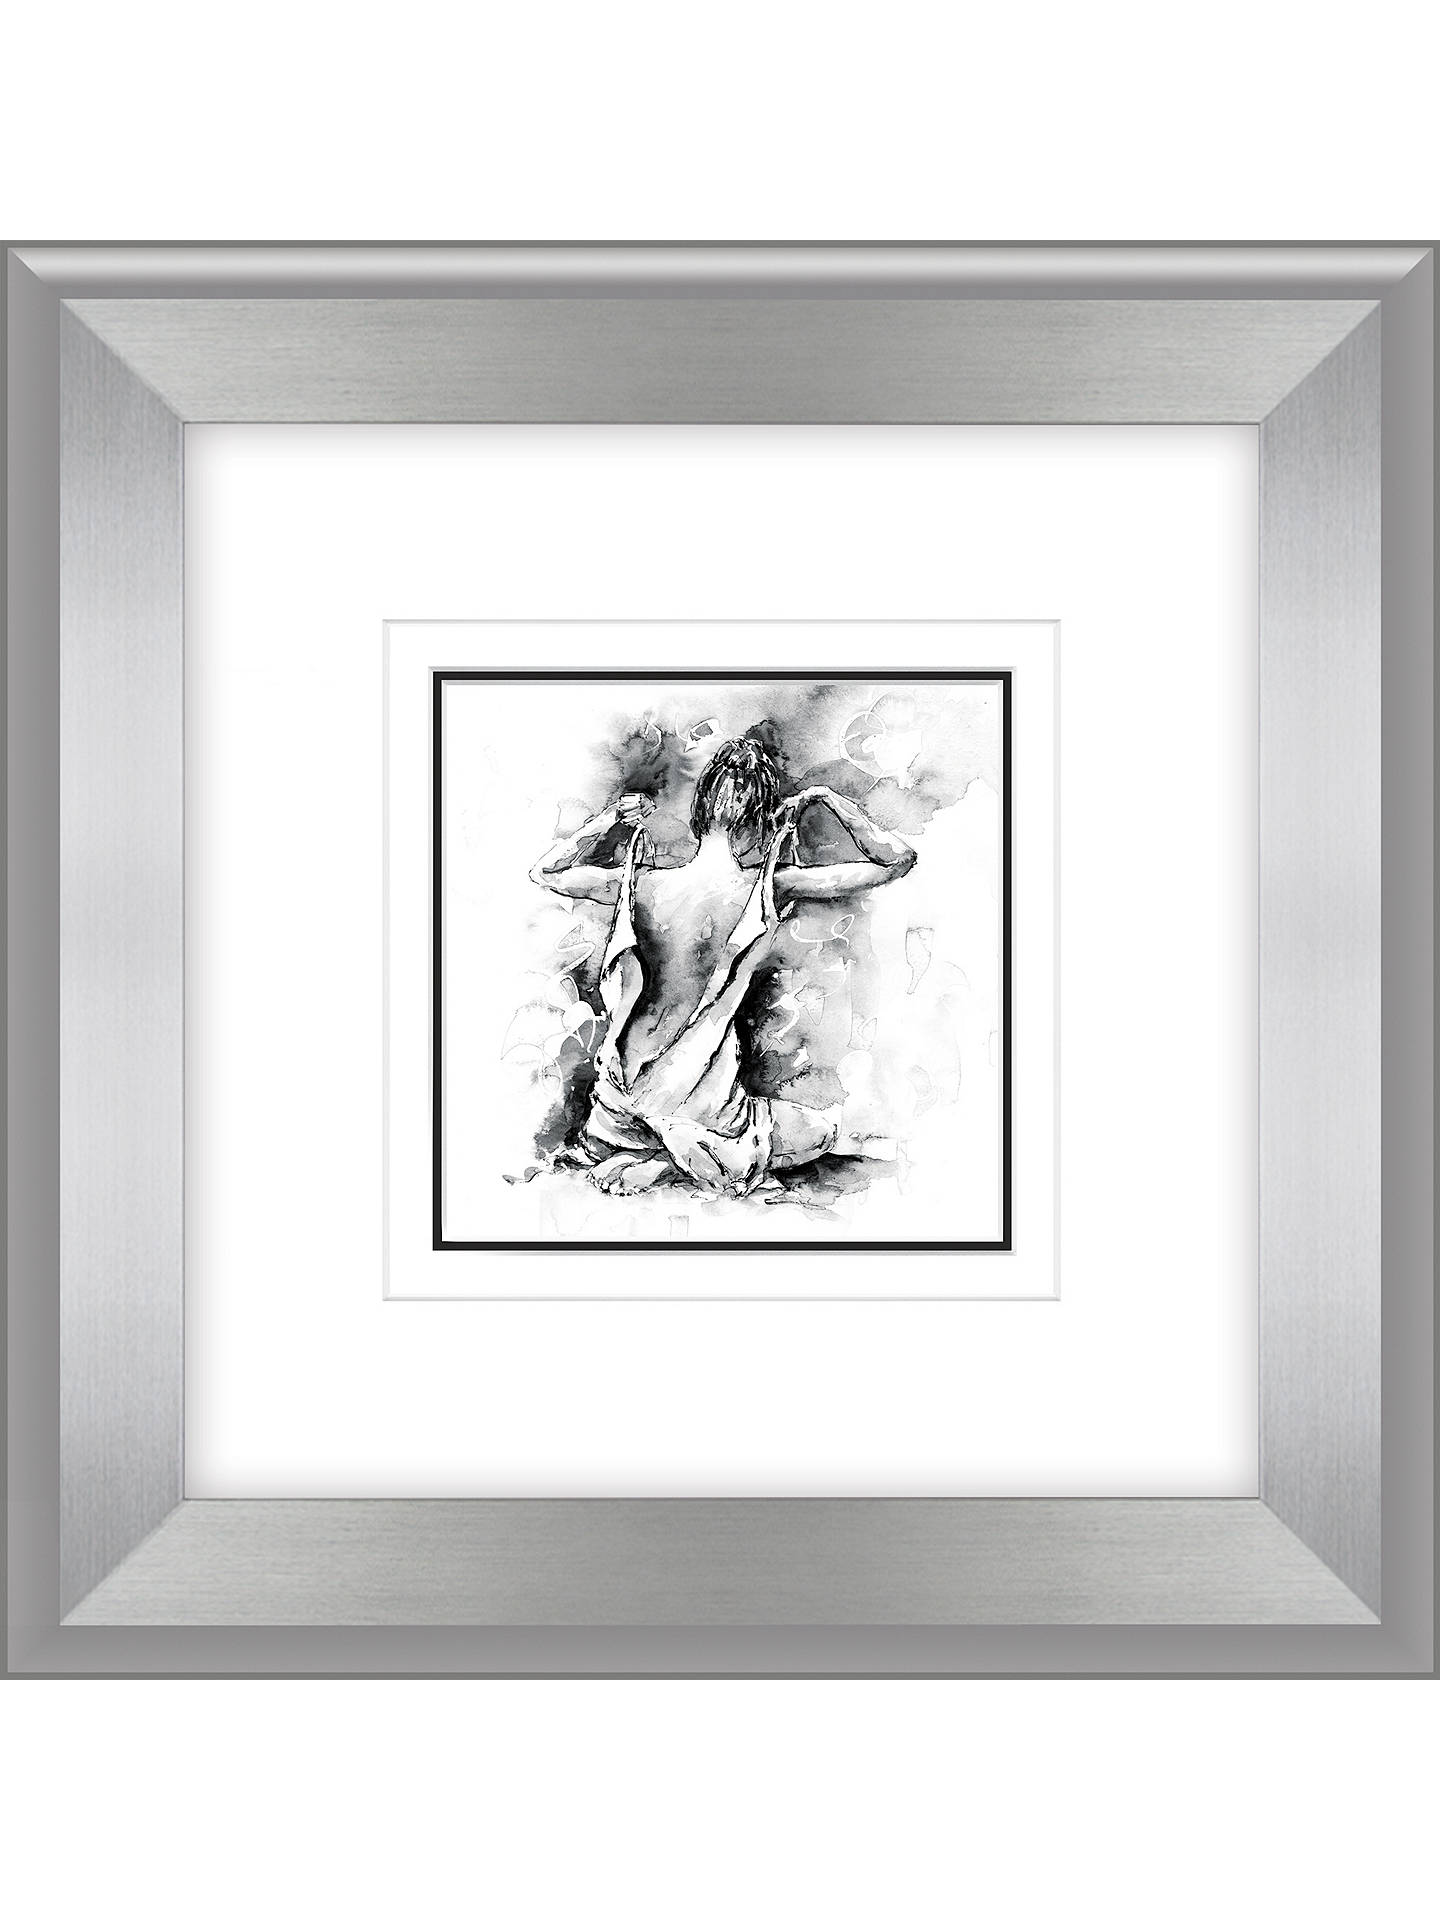 BuyJoanne Boon Thomas- Figurative Study IV Framed Print, 47 x 47cm Online at johnlewis.com